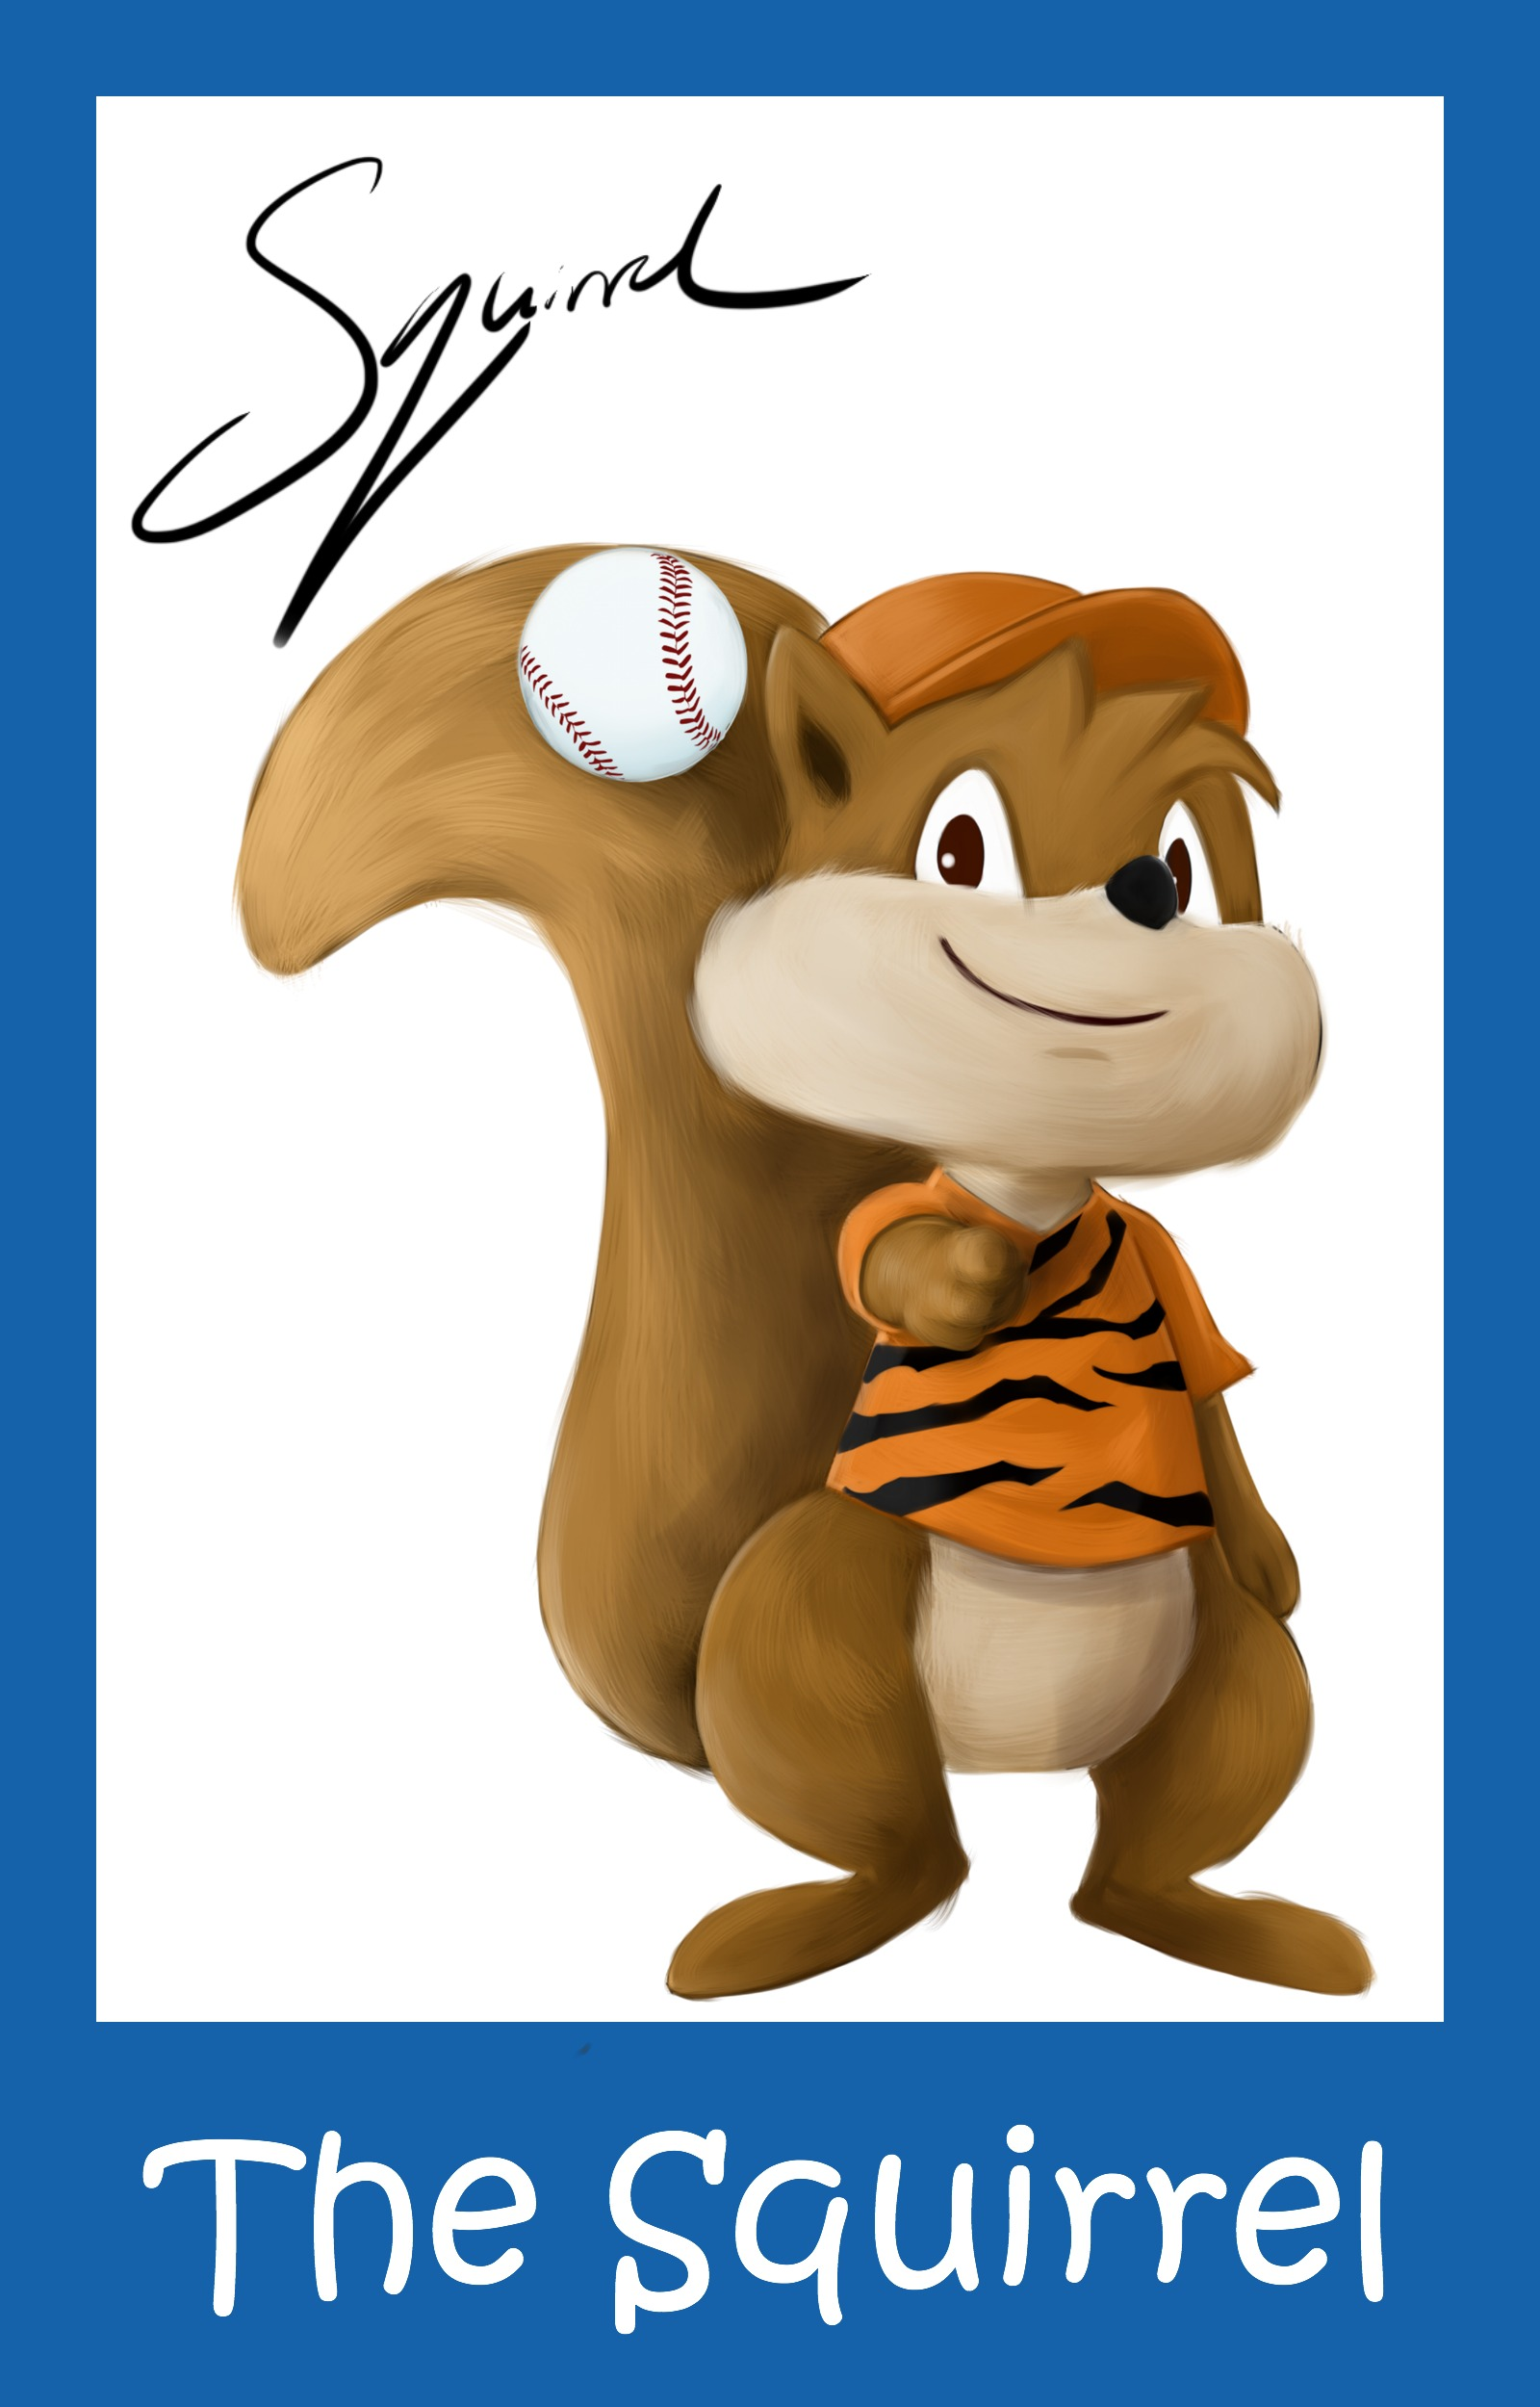 The Squirrel is a dreamer. He wants nothing more than to be the next best pitcher, but he must first overcome not being accepted to realize what it takes to follow his dream...